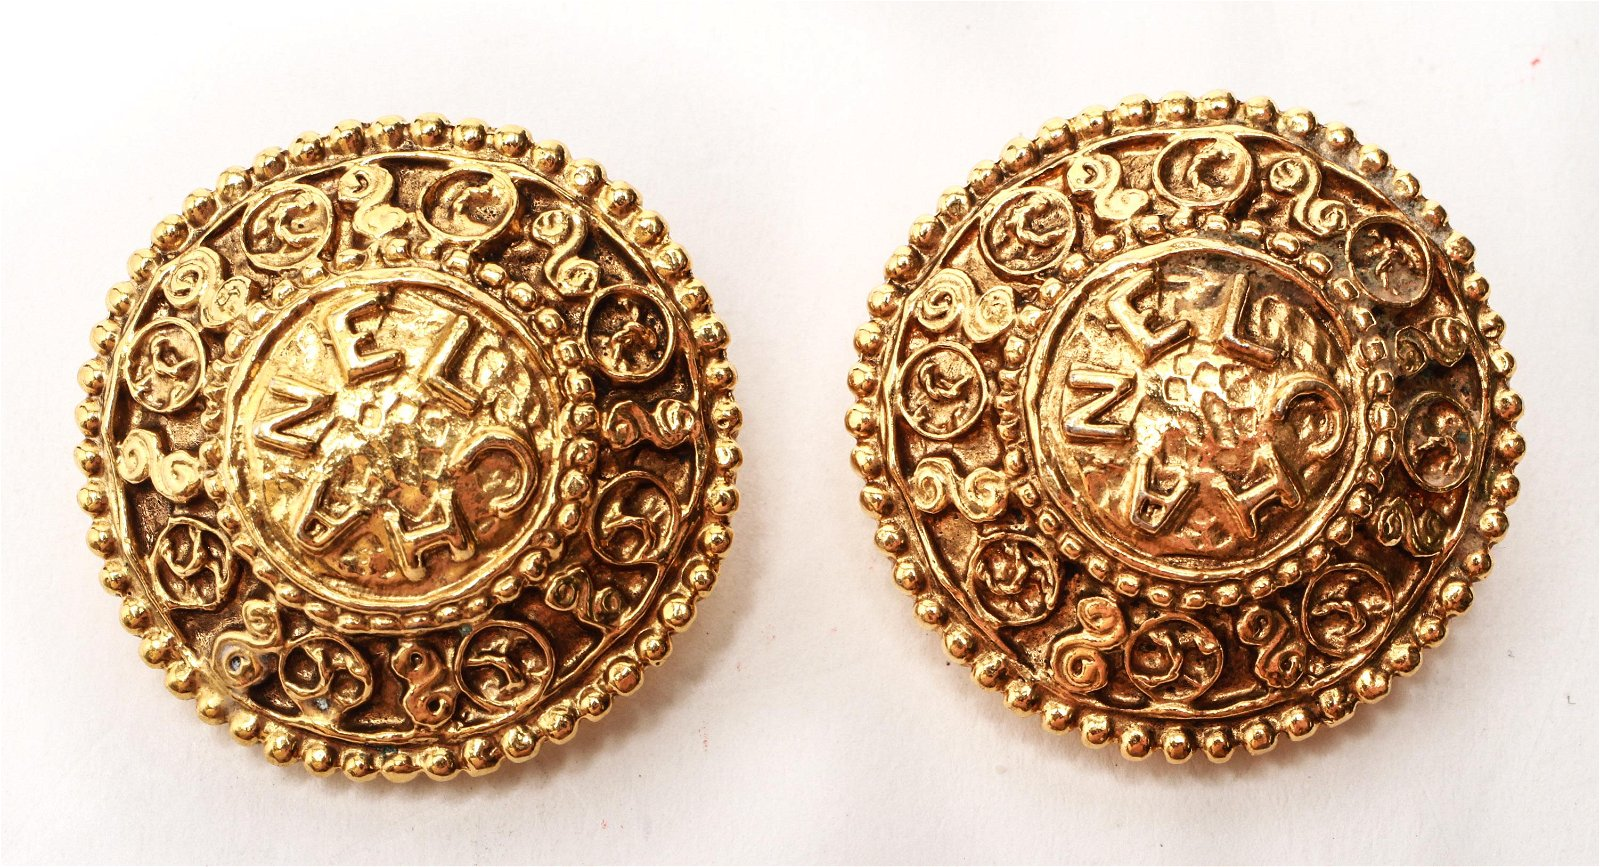 Chanel Gold-Tone Clip On Earrings, Vintage, Pair